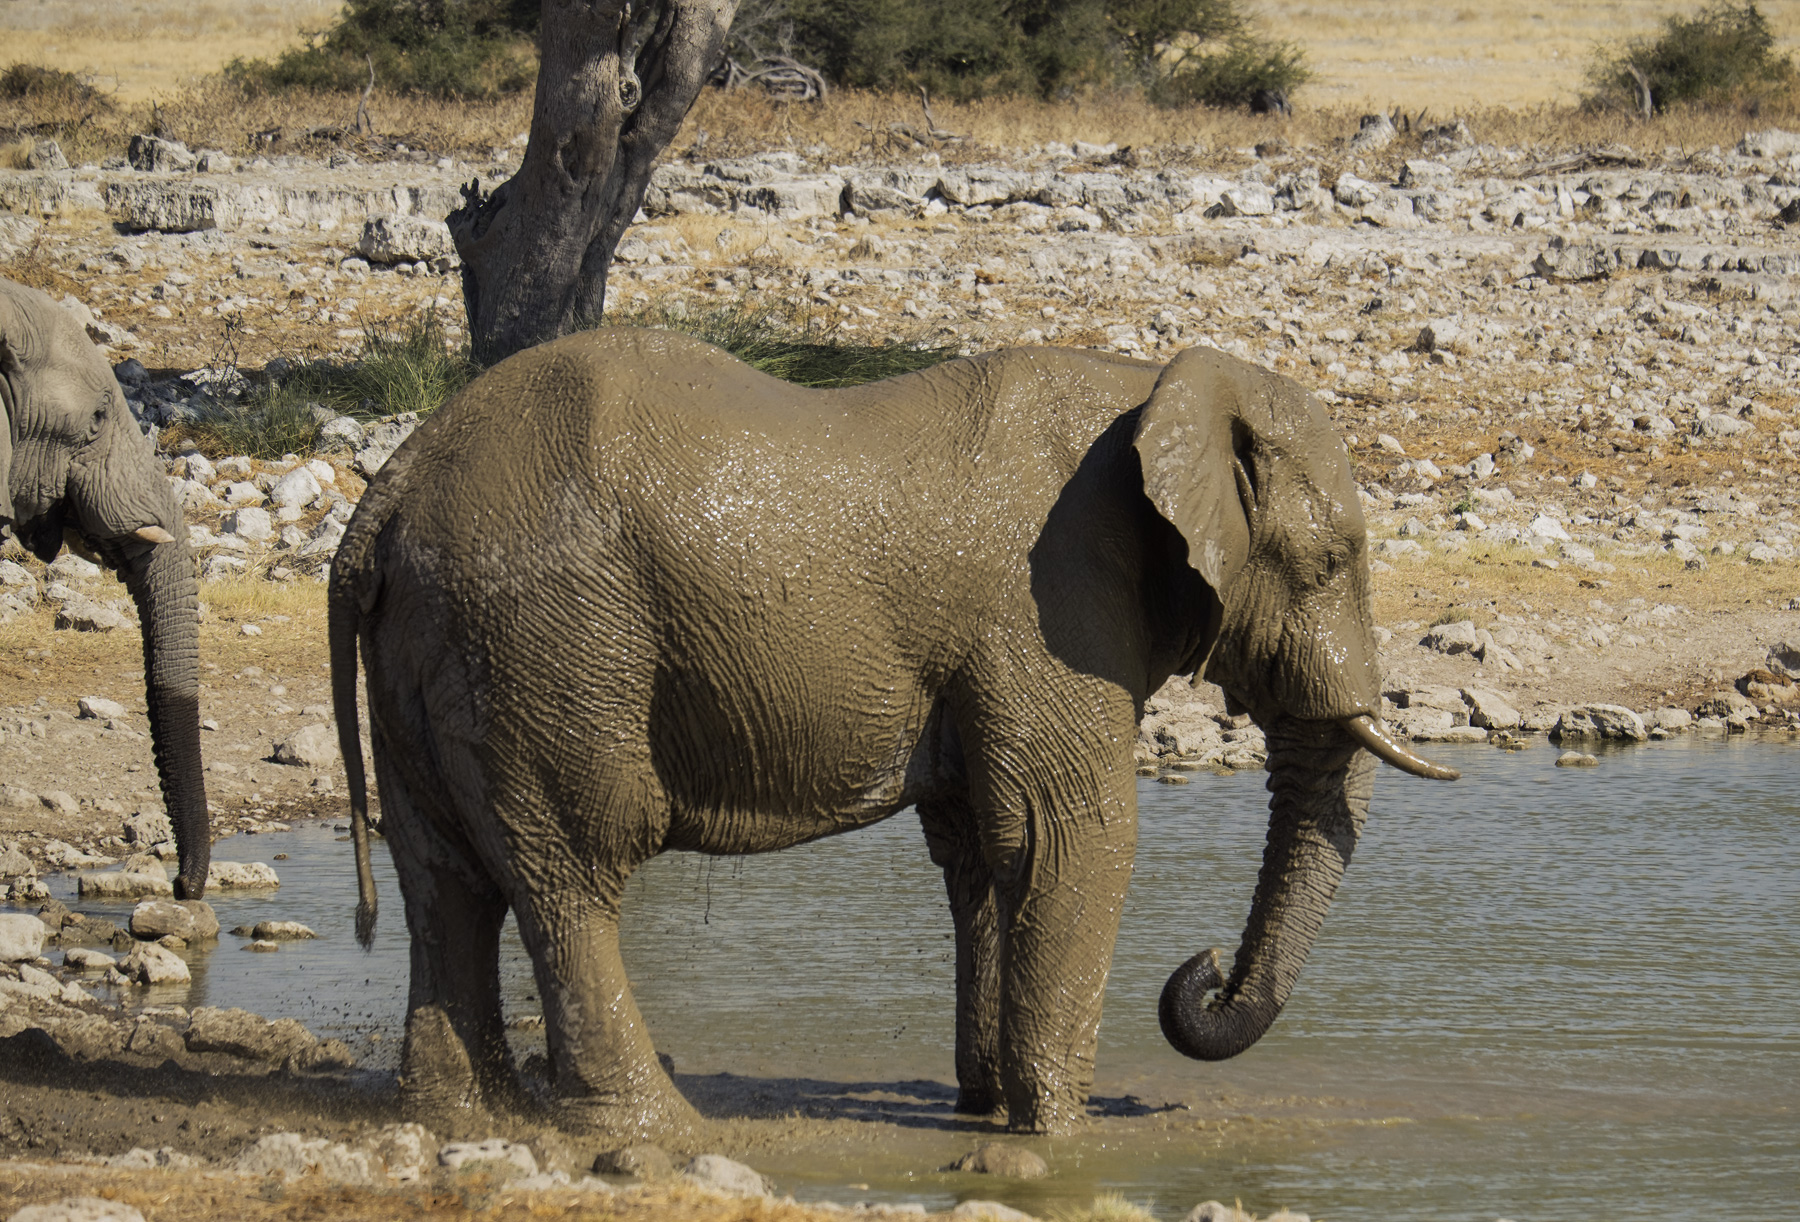 Bath Time, Etosha, Namibia, Africa, elephants, mud, coated, water, waterhole, hide, protection, sun, midday, photo